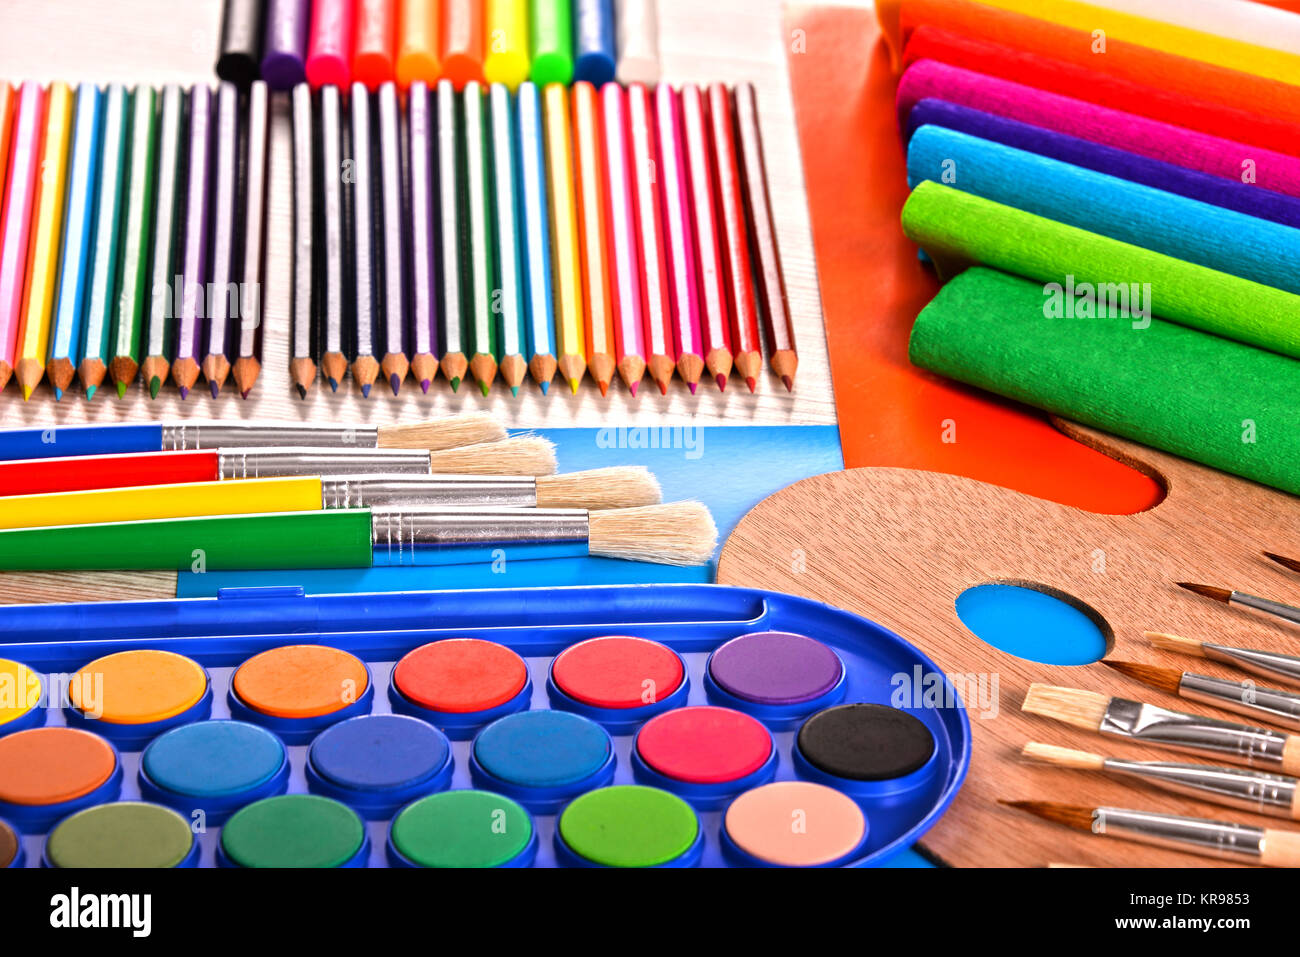 Composition with school accessories for painting and drawing - Stock Image